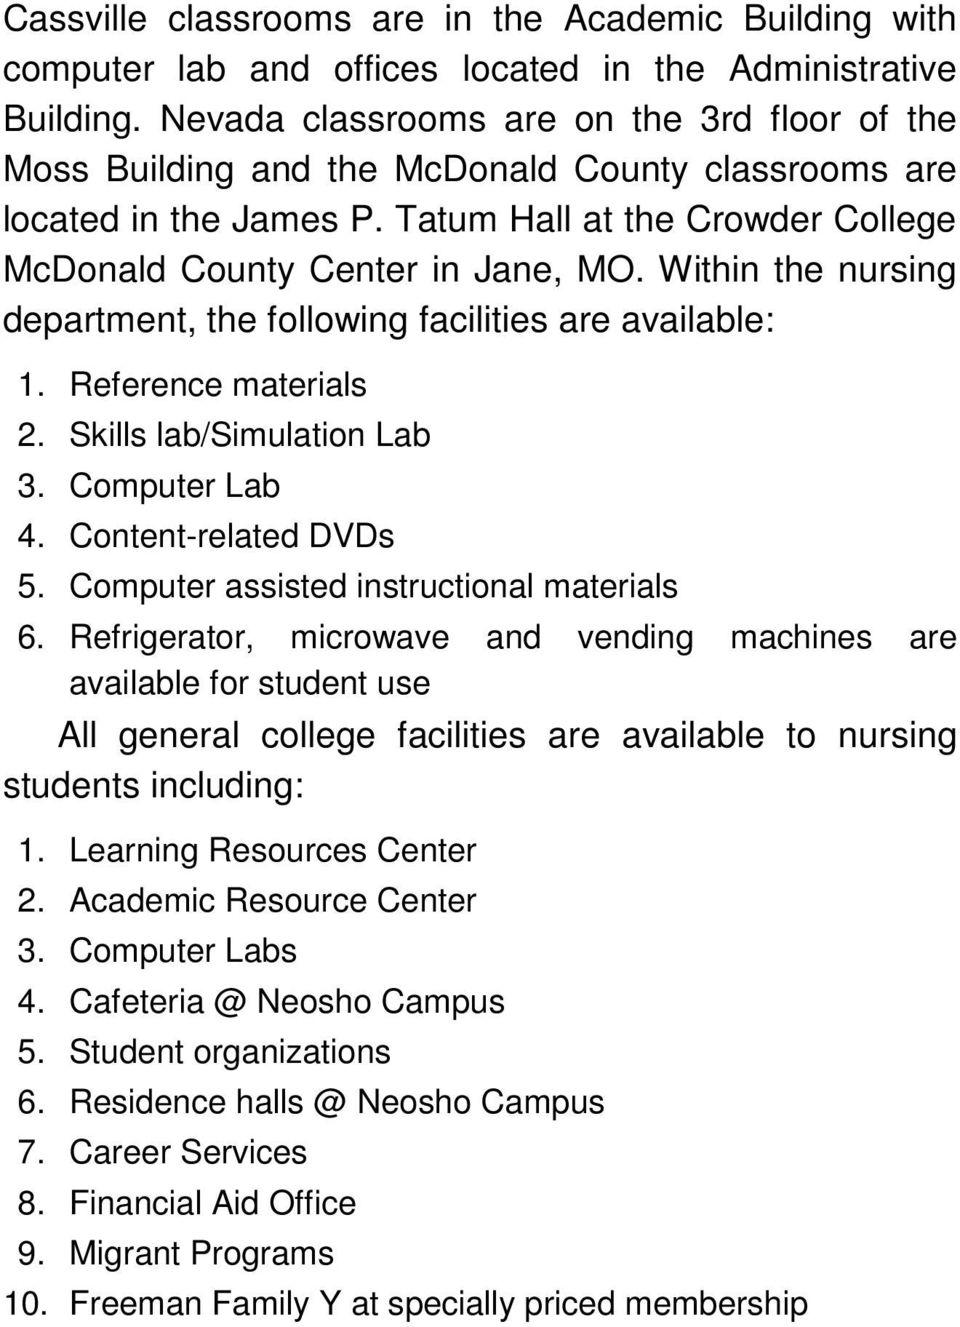 Within the nursing department, the following facilities are available: 1. Reference materials 2. Skills lab/simulation Lab 3. Computer Lab 4. Content-related DVDs 5.